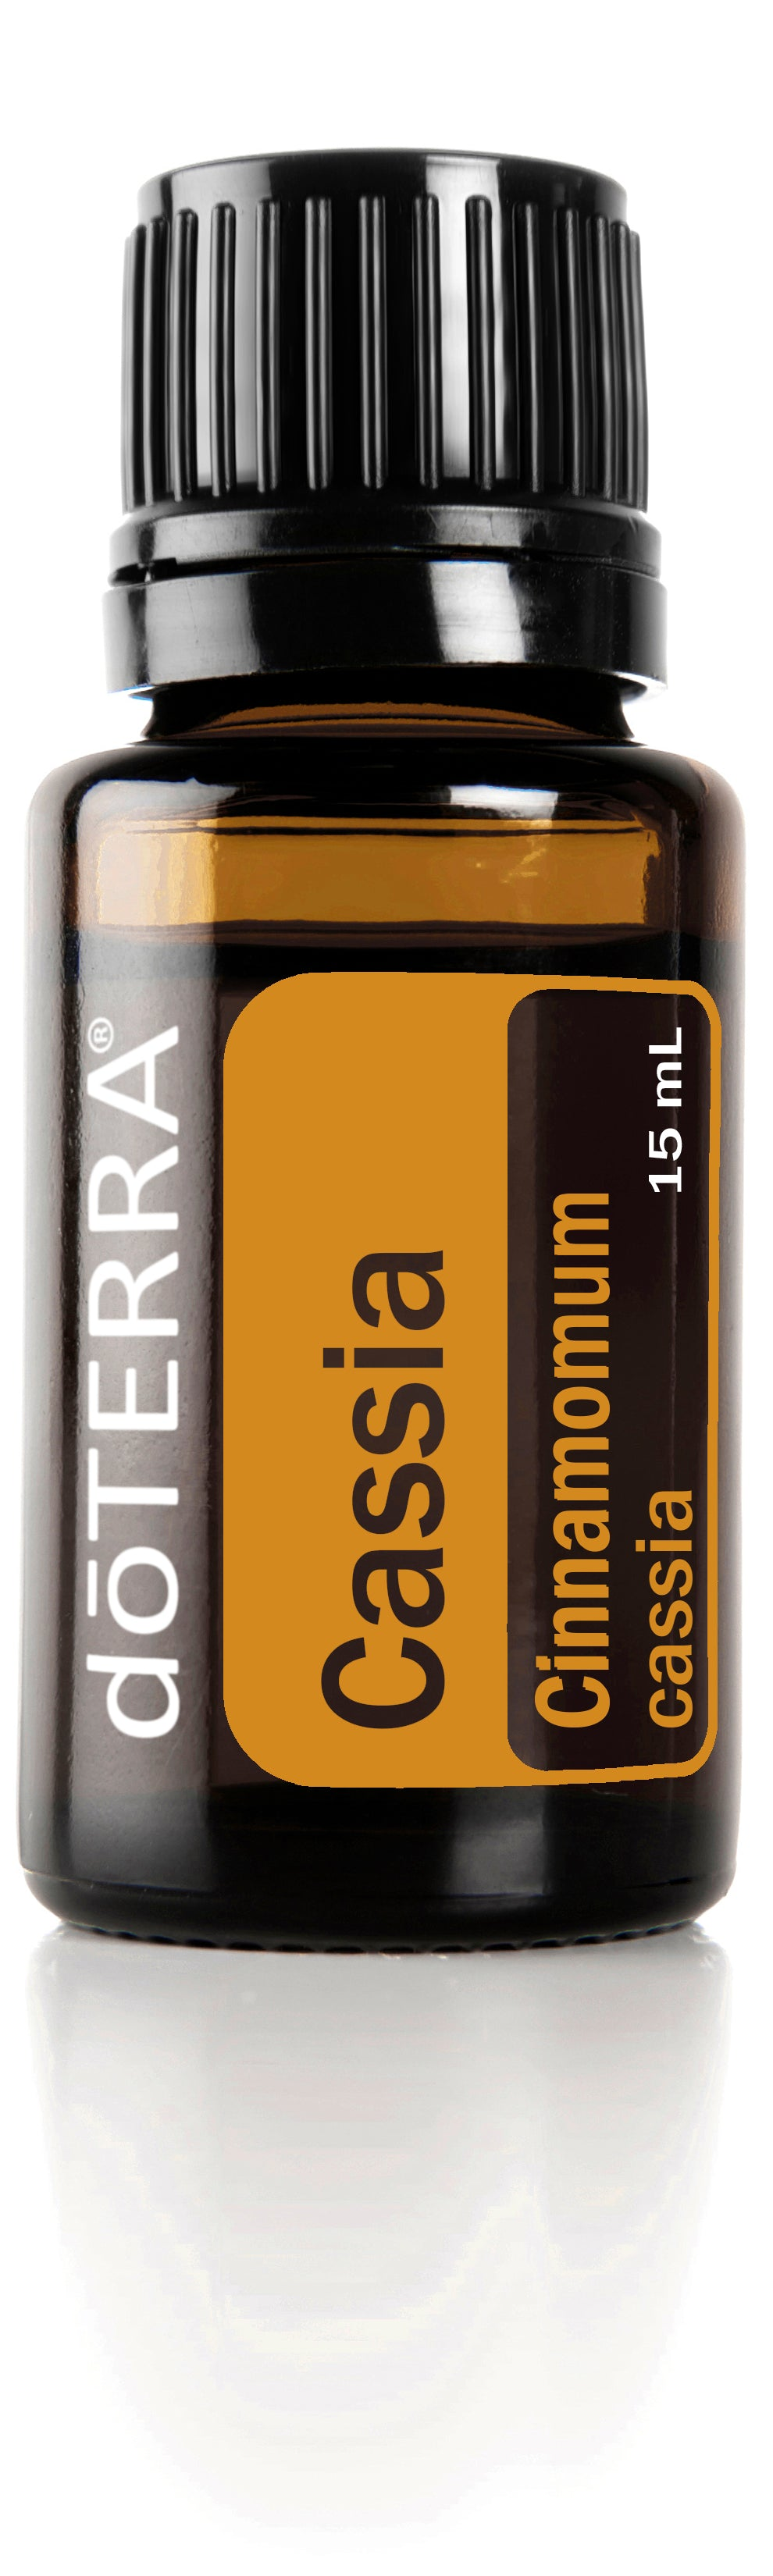 Cassia Essential Oil 15ml Cinnamomum cassia